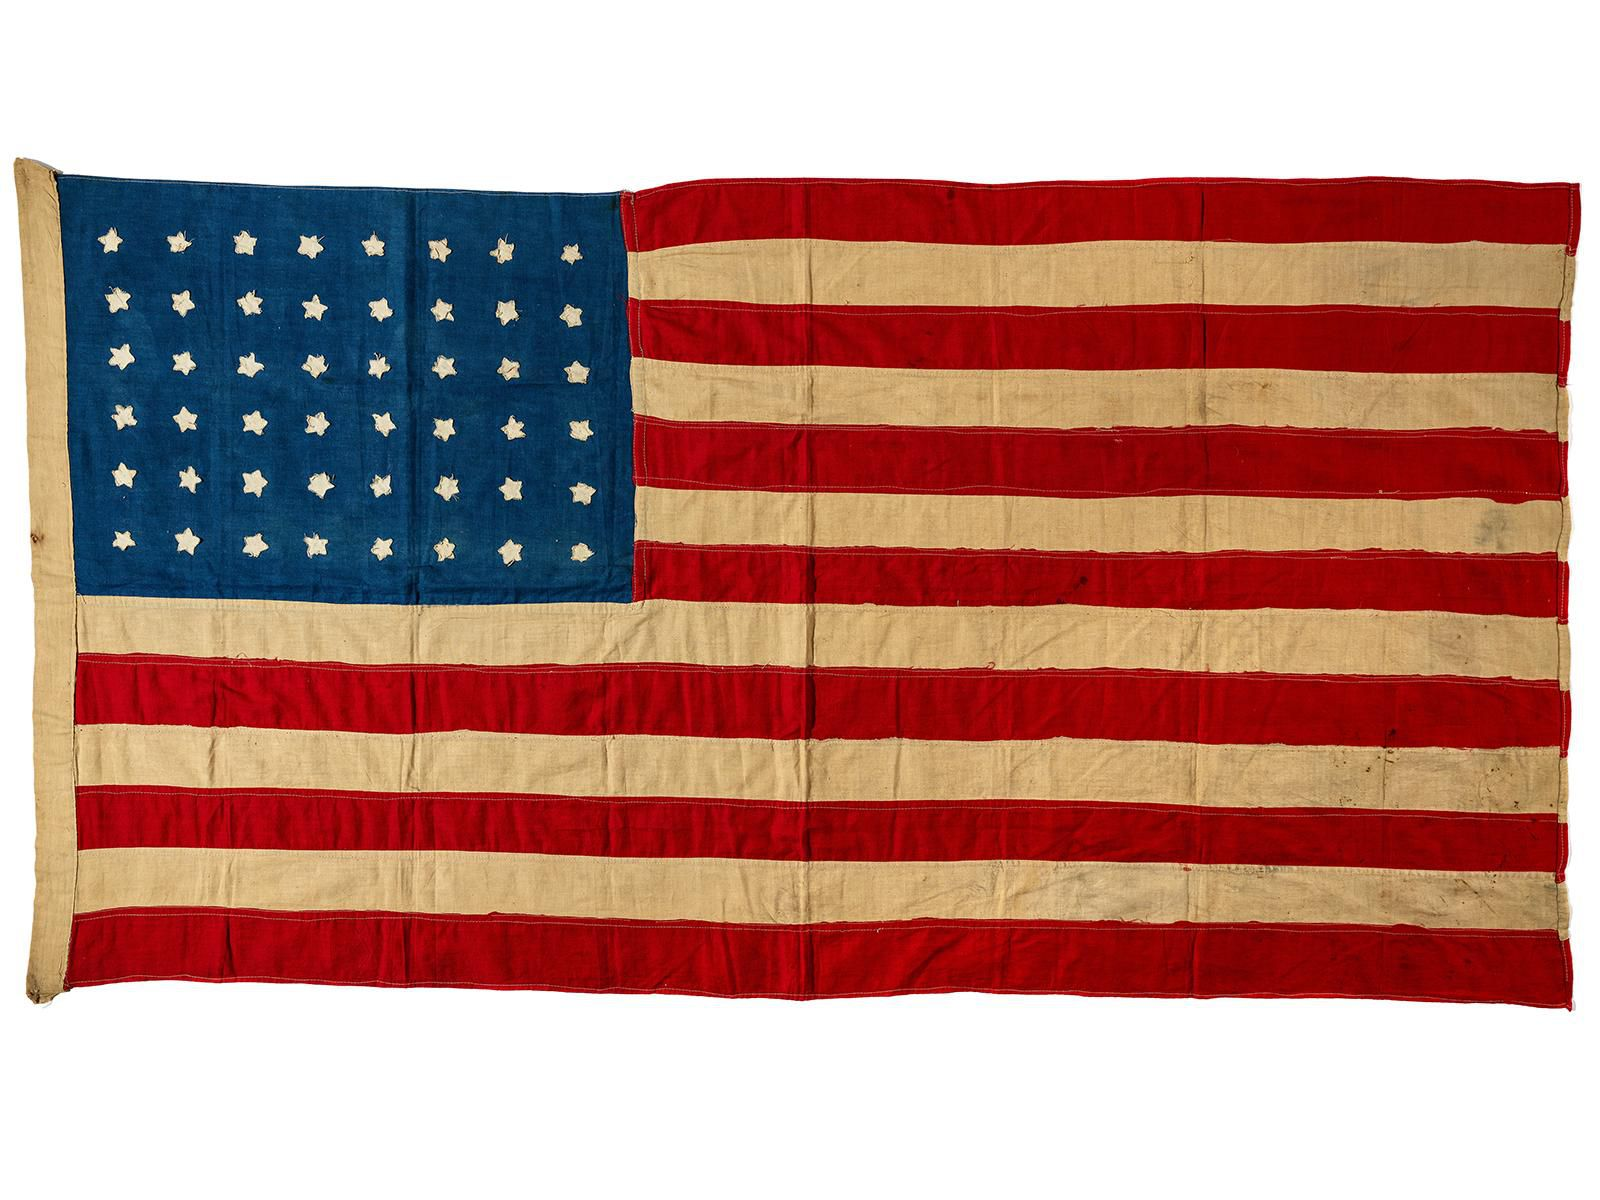 A Hundred Year Old Handmade American Flag Flies Home To Scotland